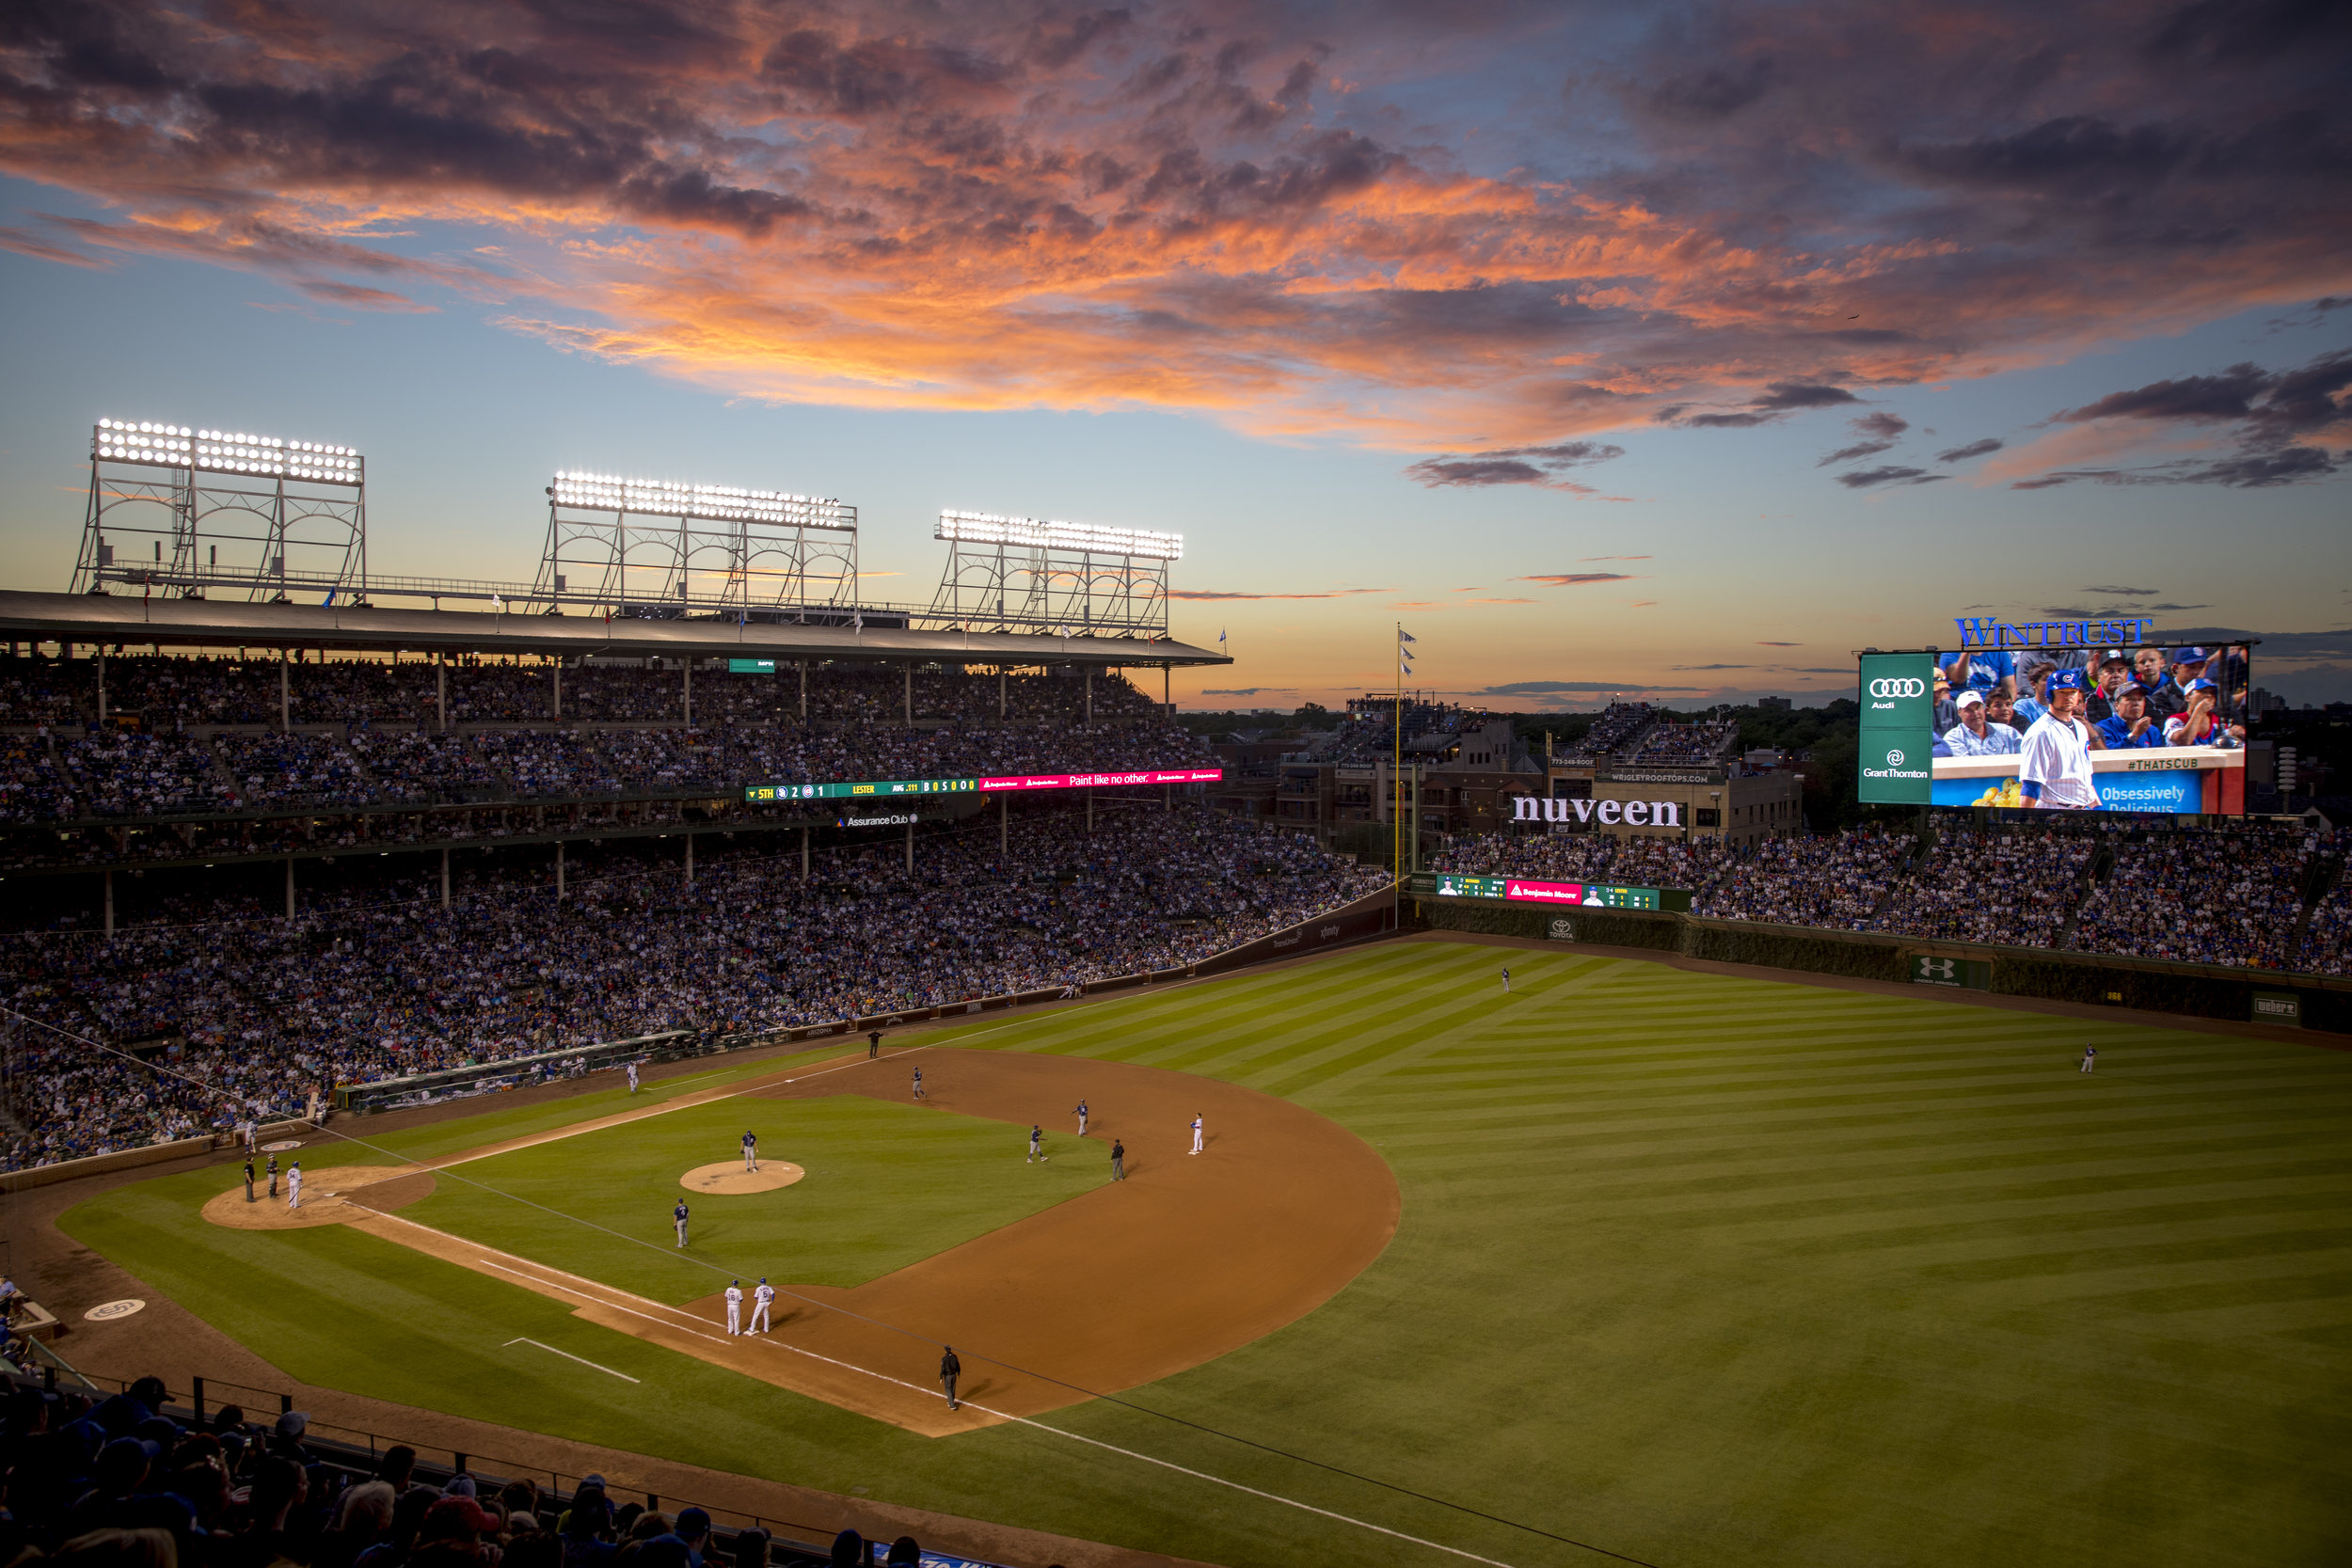 Nuveen_sign_at_Wrigley_Field,_Chicago_Cubs,_2017.jpg